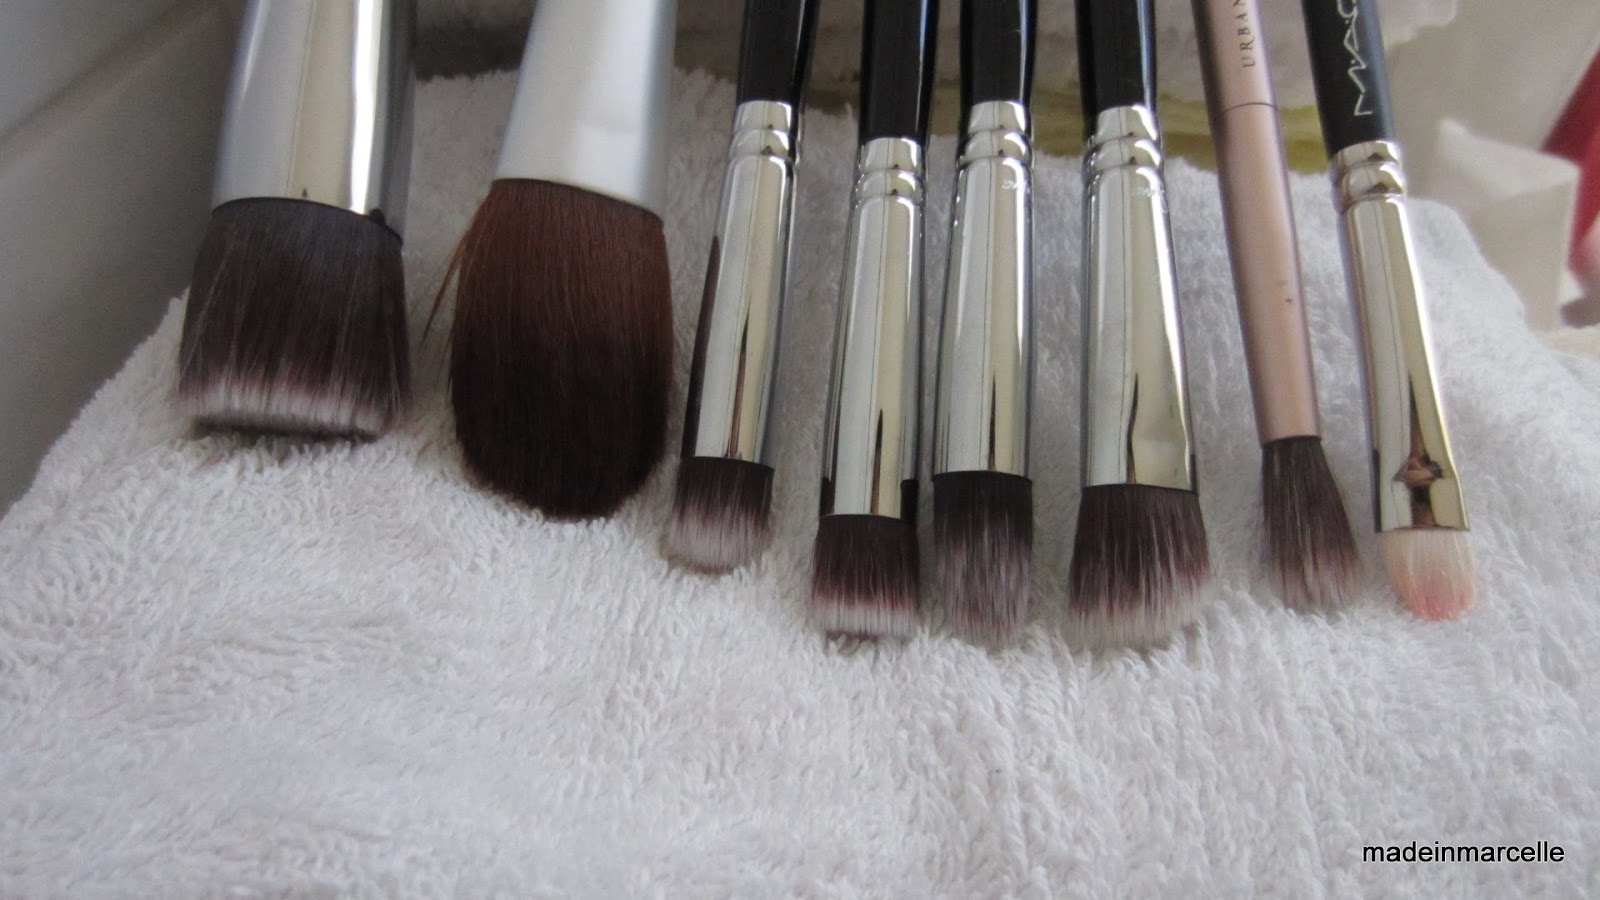 [HOW TO] by C: Let's wash those dirty makeup brushes ...